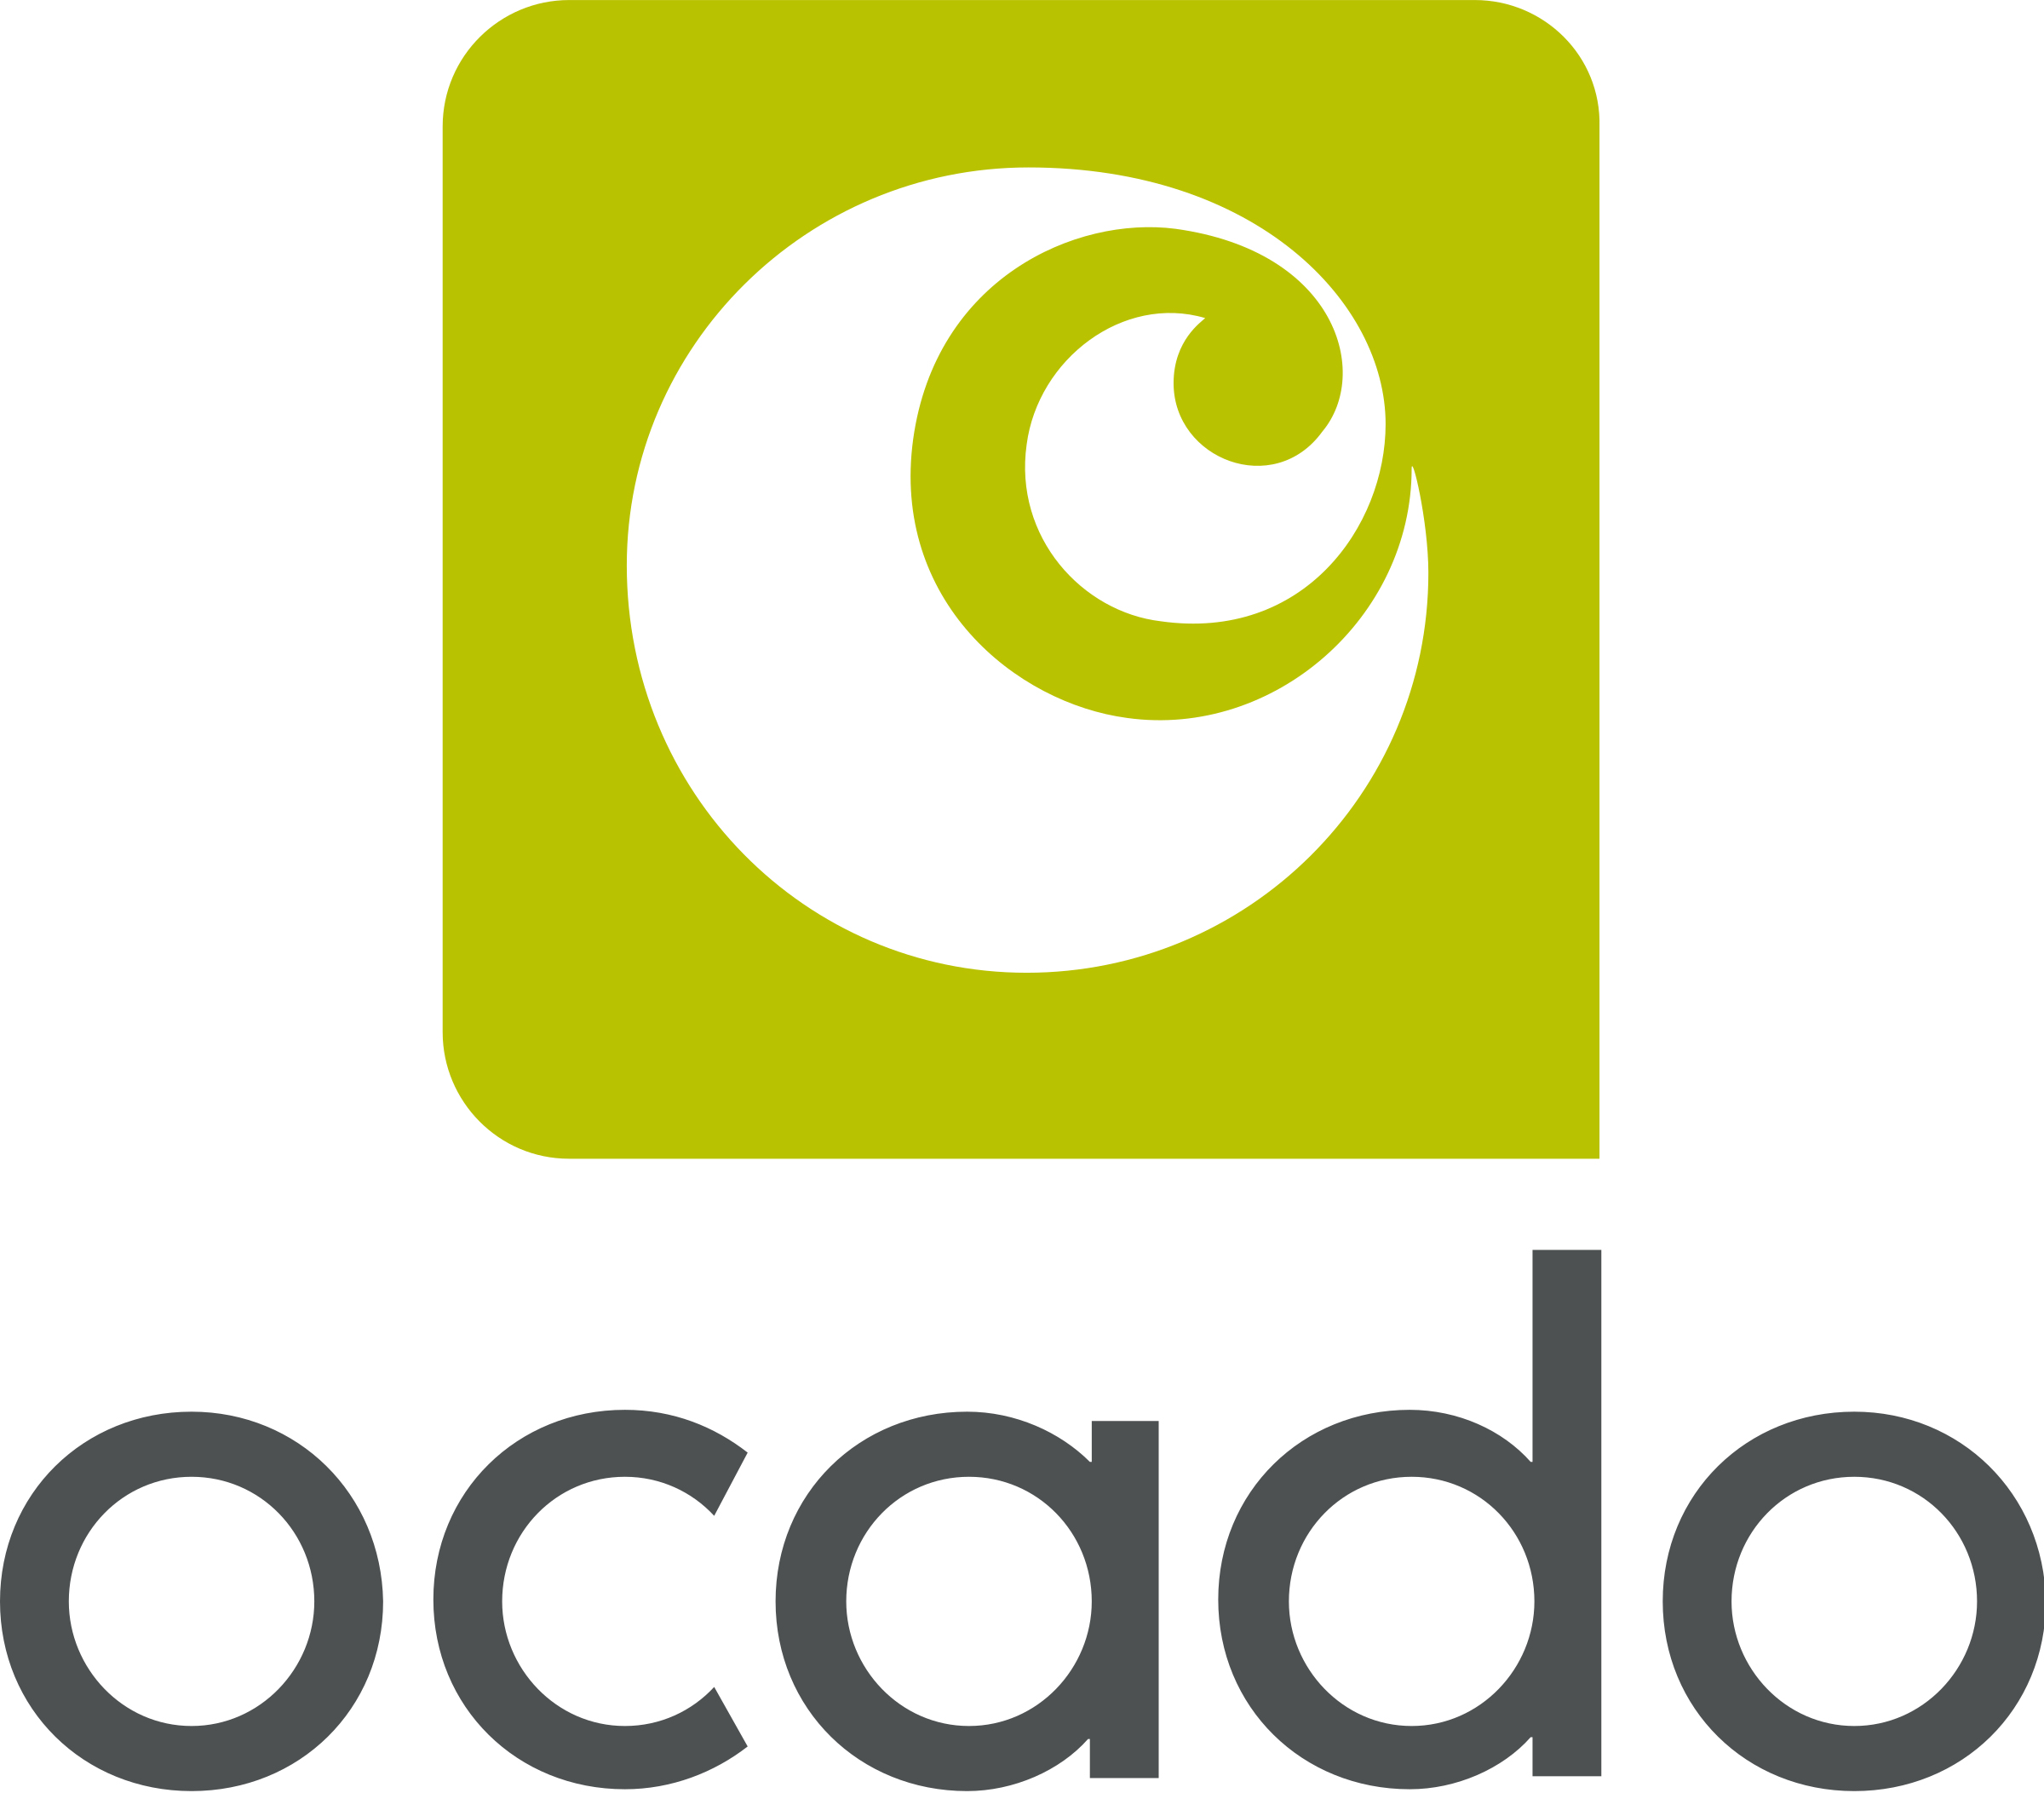 ocado-logo-png-transparent copy.jpg